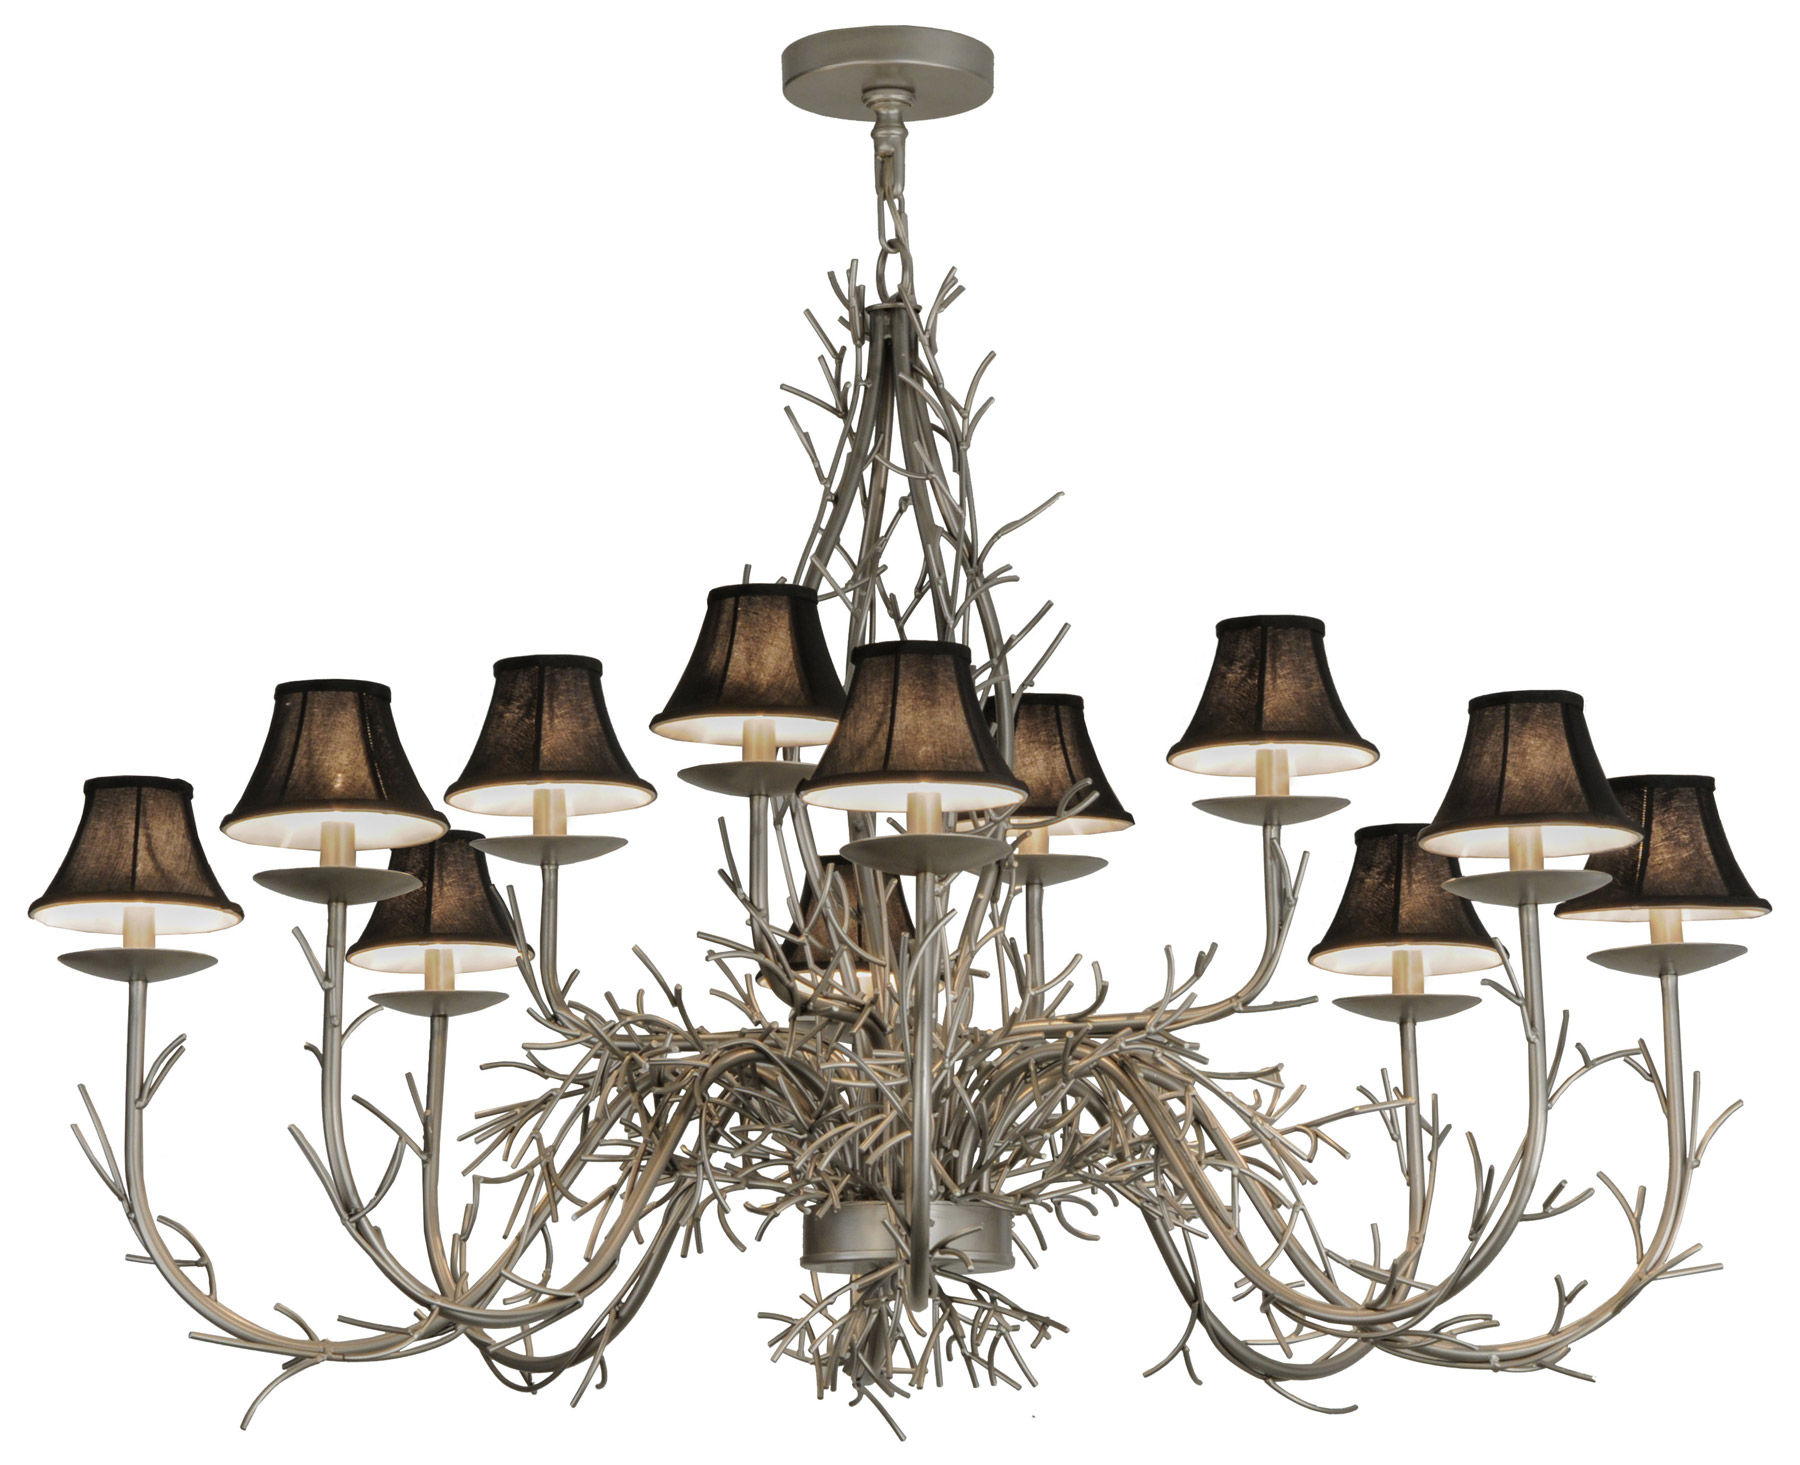 Meyda 147591 Twig Twelve Light Chandelier